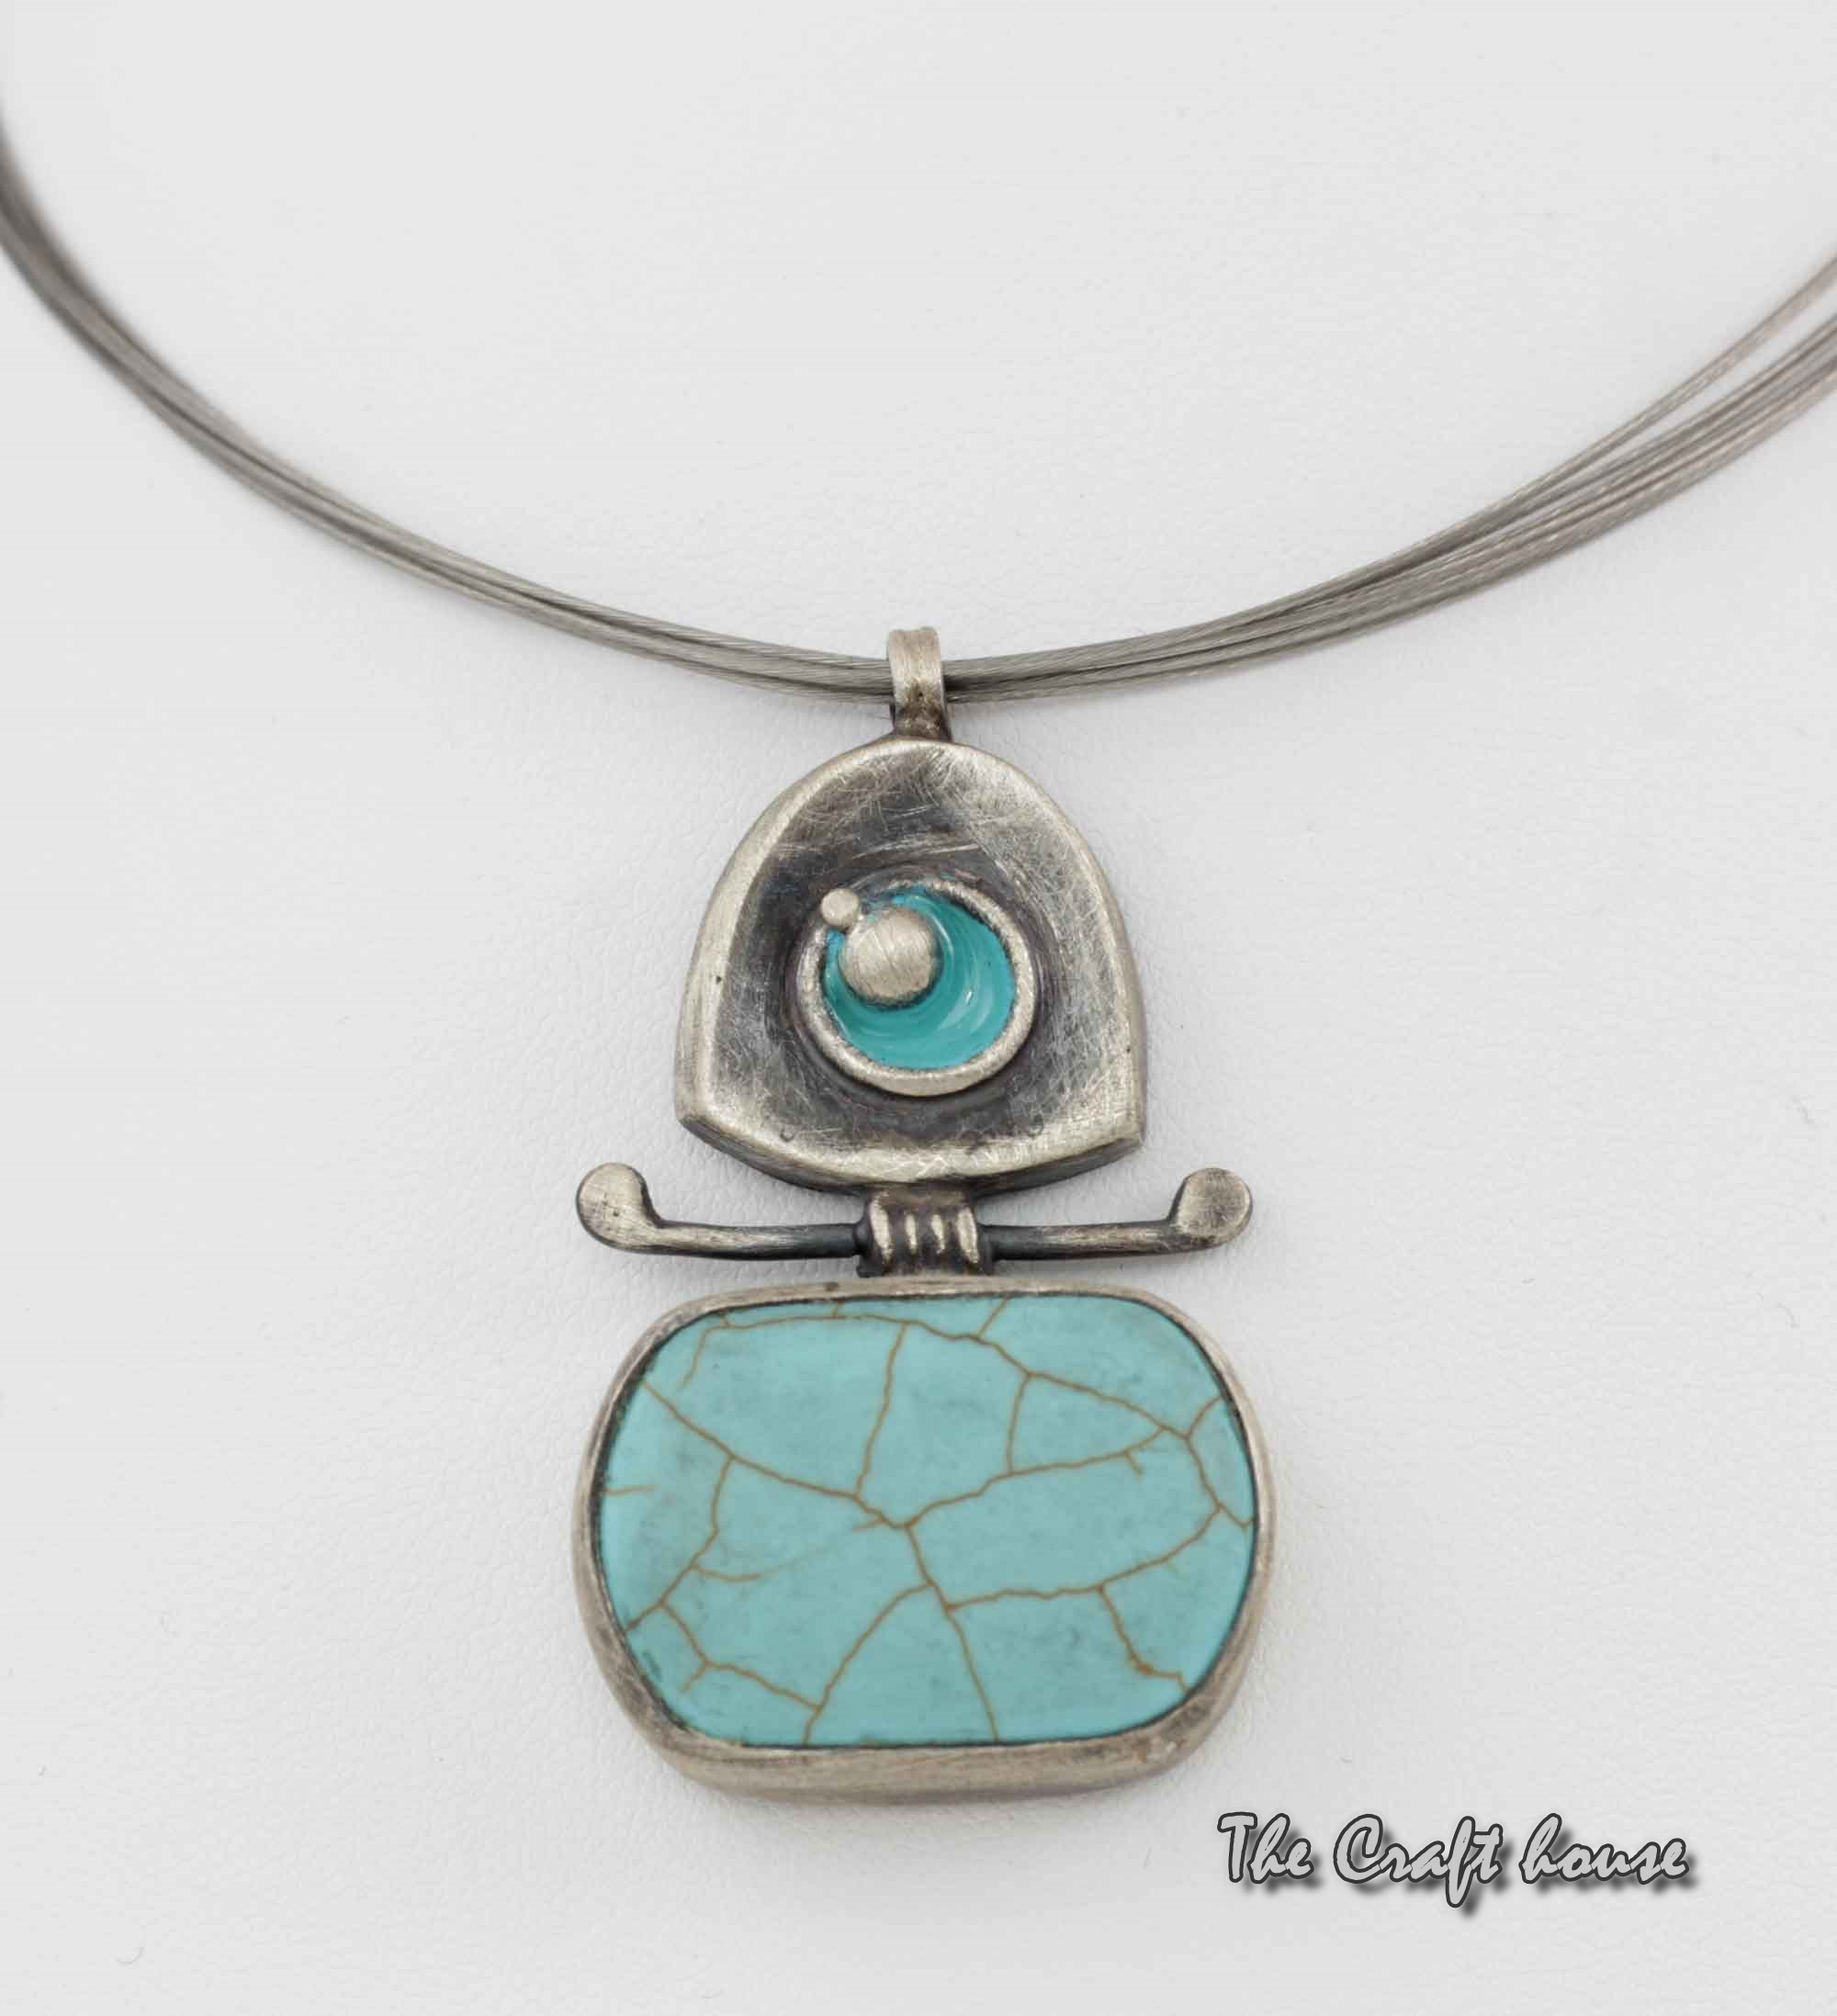 Silver necklace with Turquoise and enamel